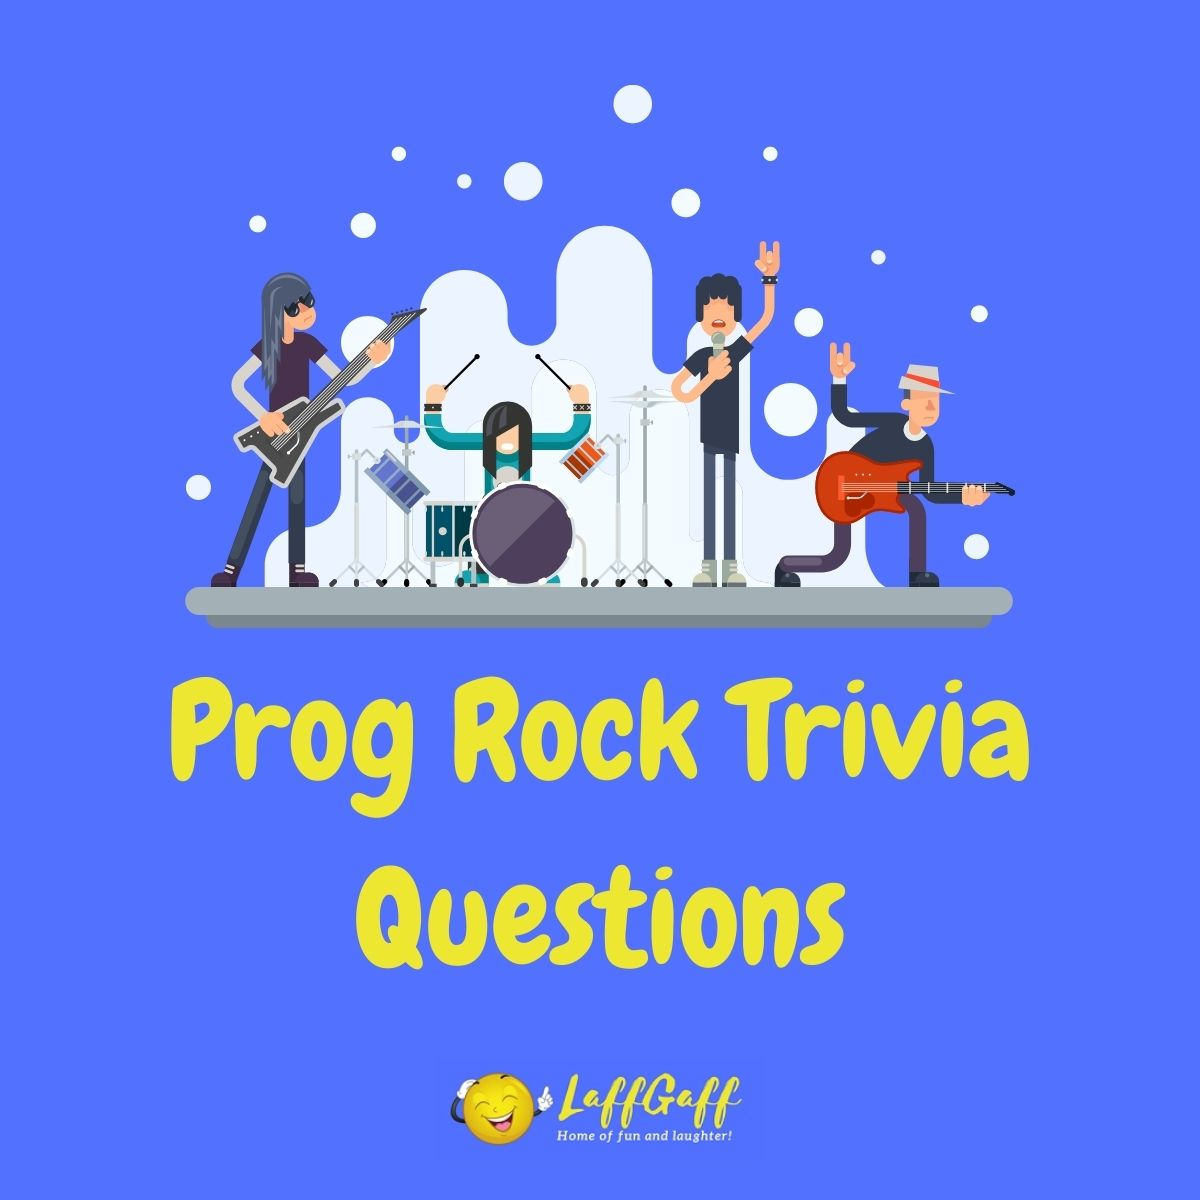 Featured image for a page of prog rock trivia questions and answers.